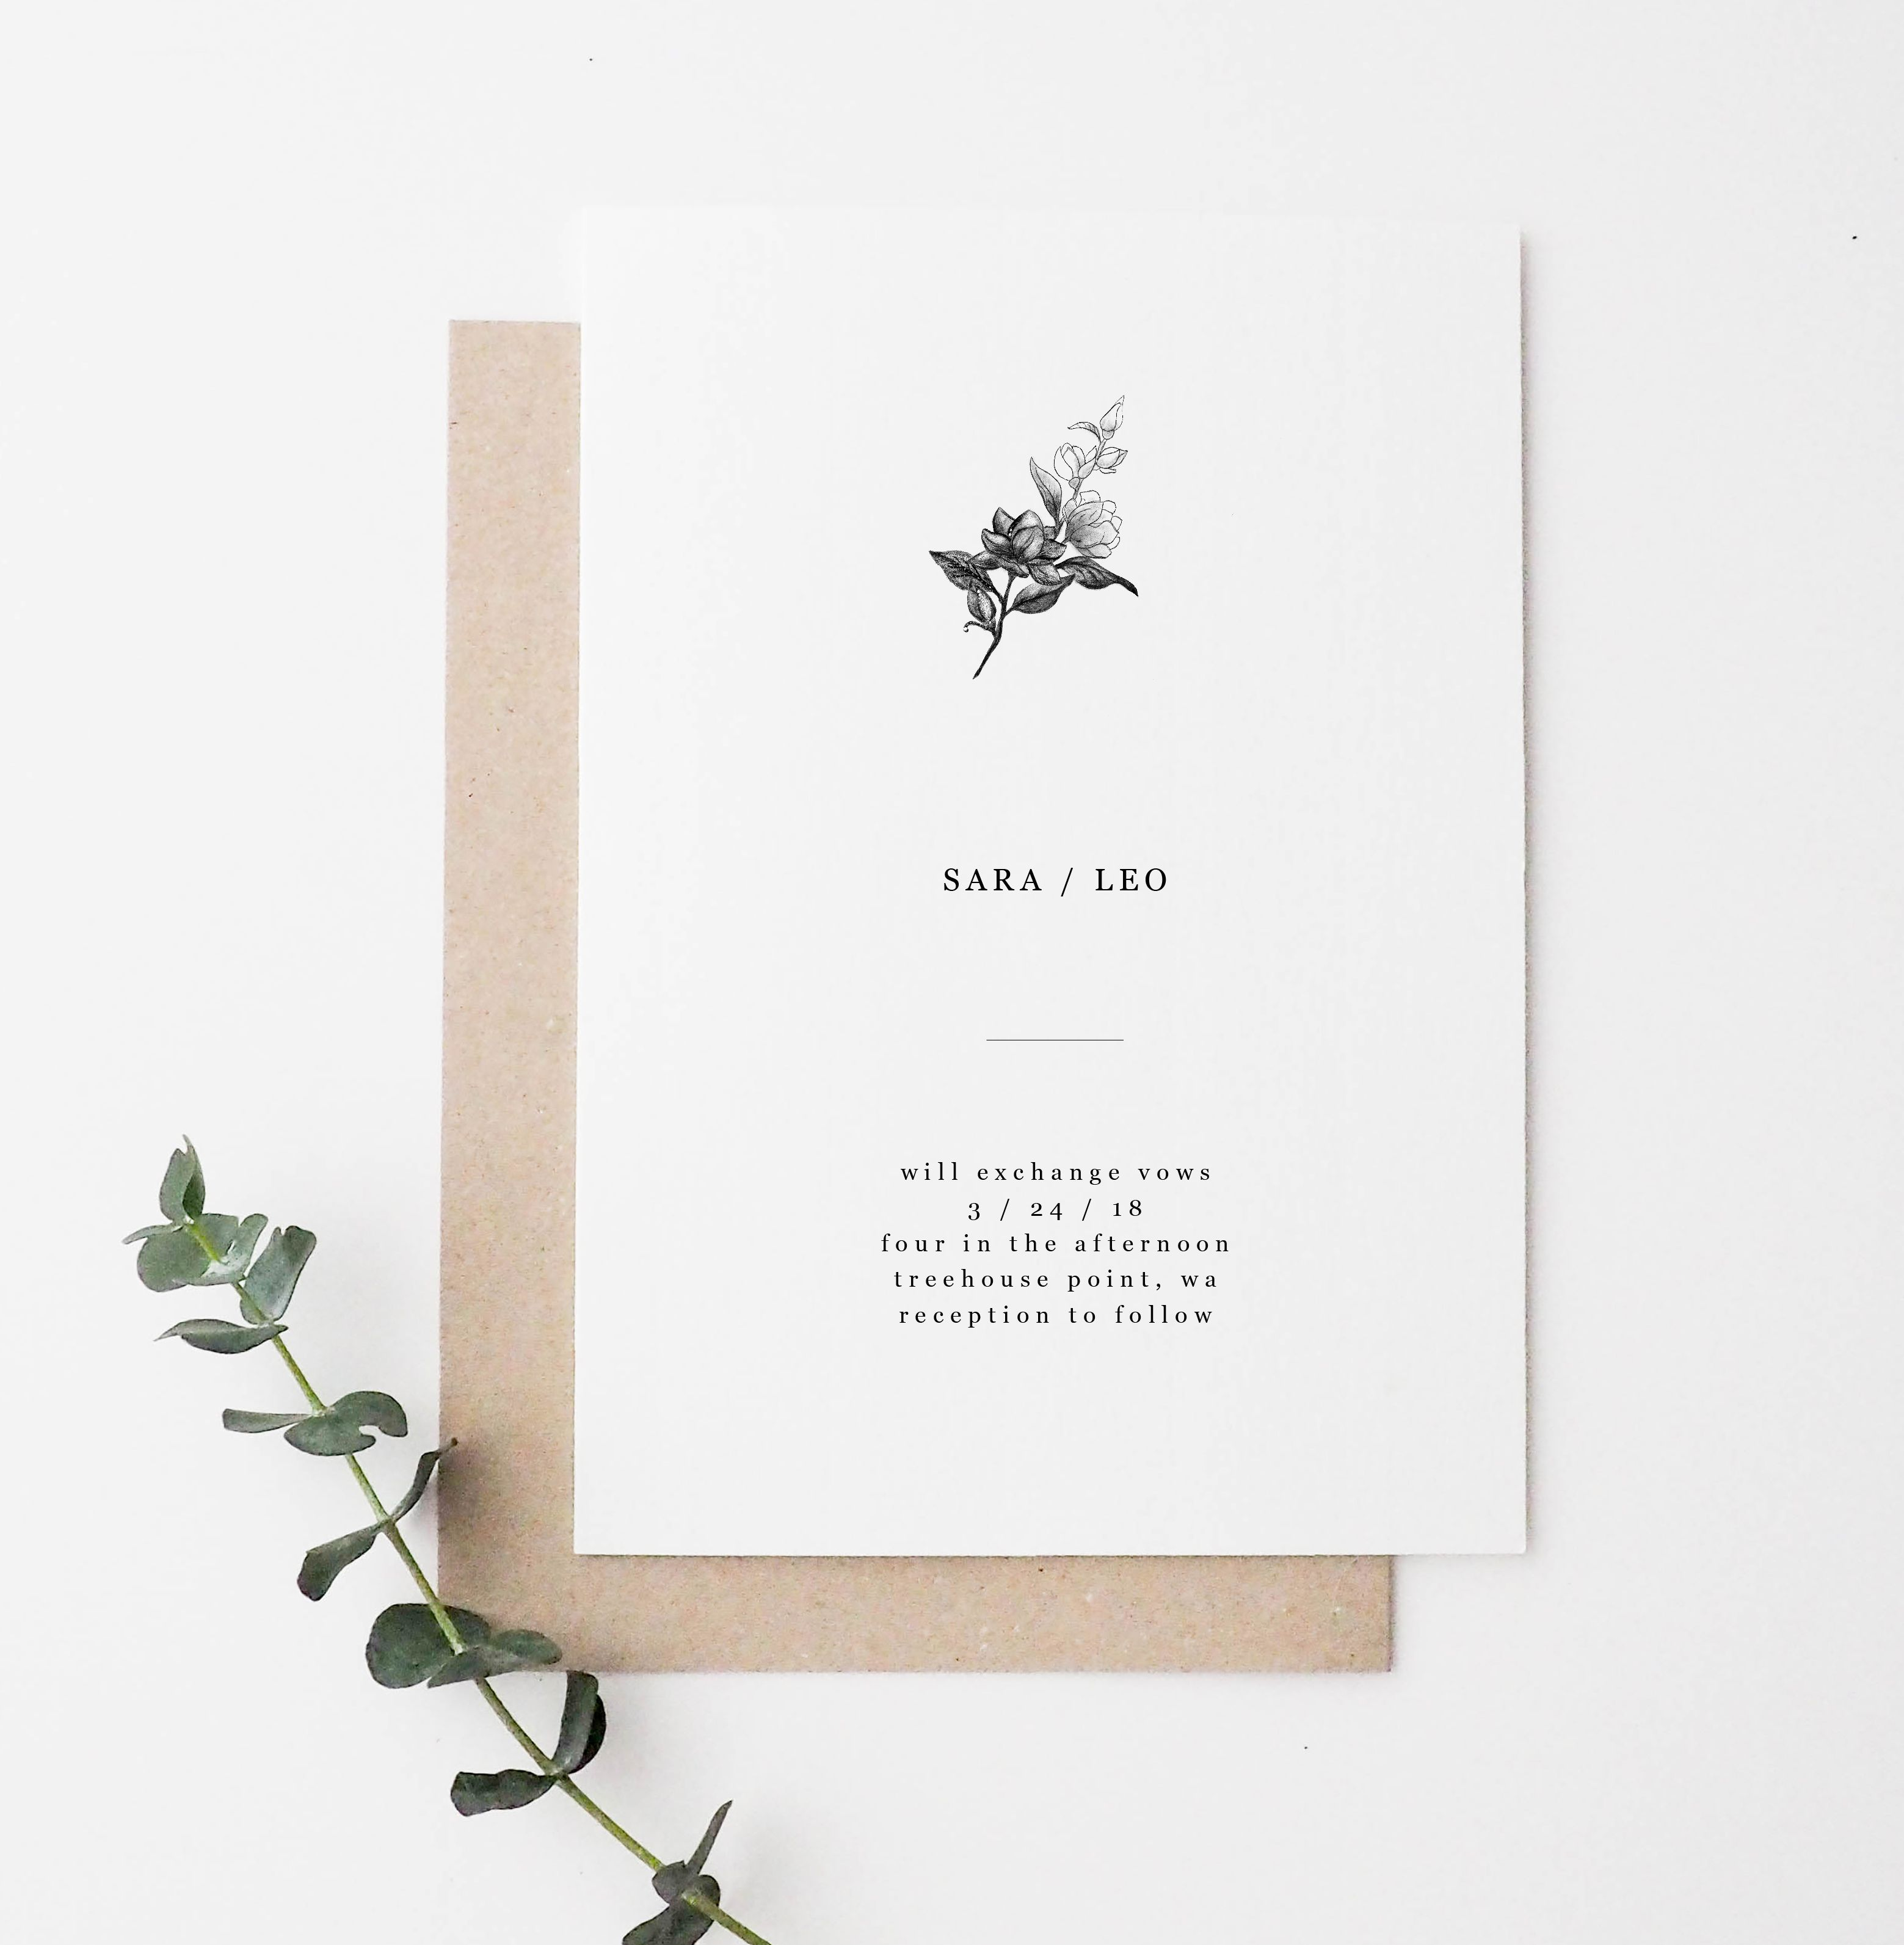 Gallery Minimalist Wedding Invitations: Simple Wedding Invitation